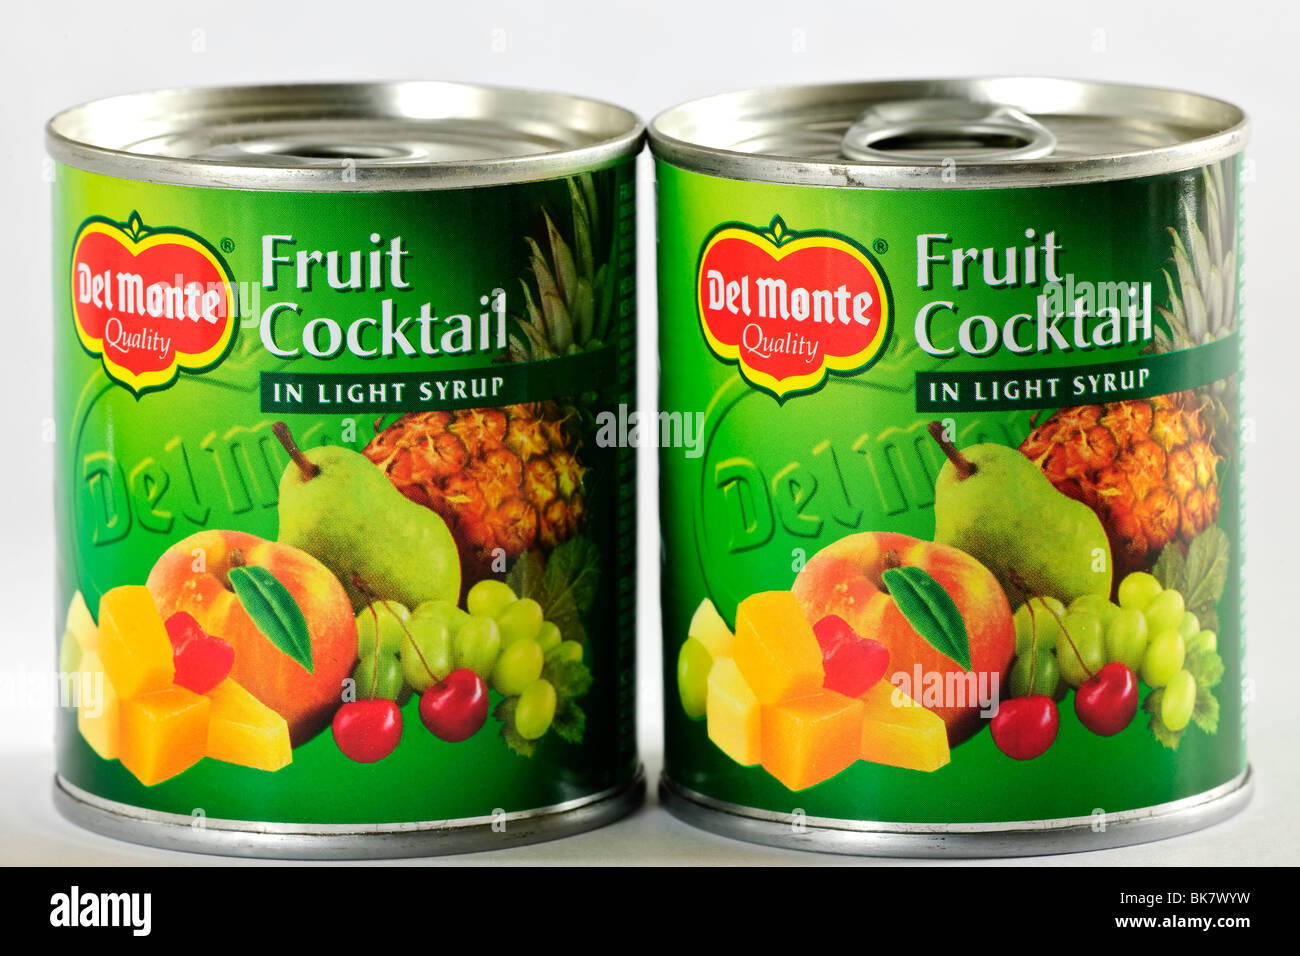 Two Tins of Del Monte fruit cocktail in light syrup Stock Photo, Royalty Free Image: 29062877